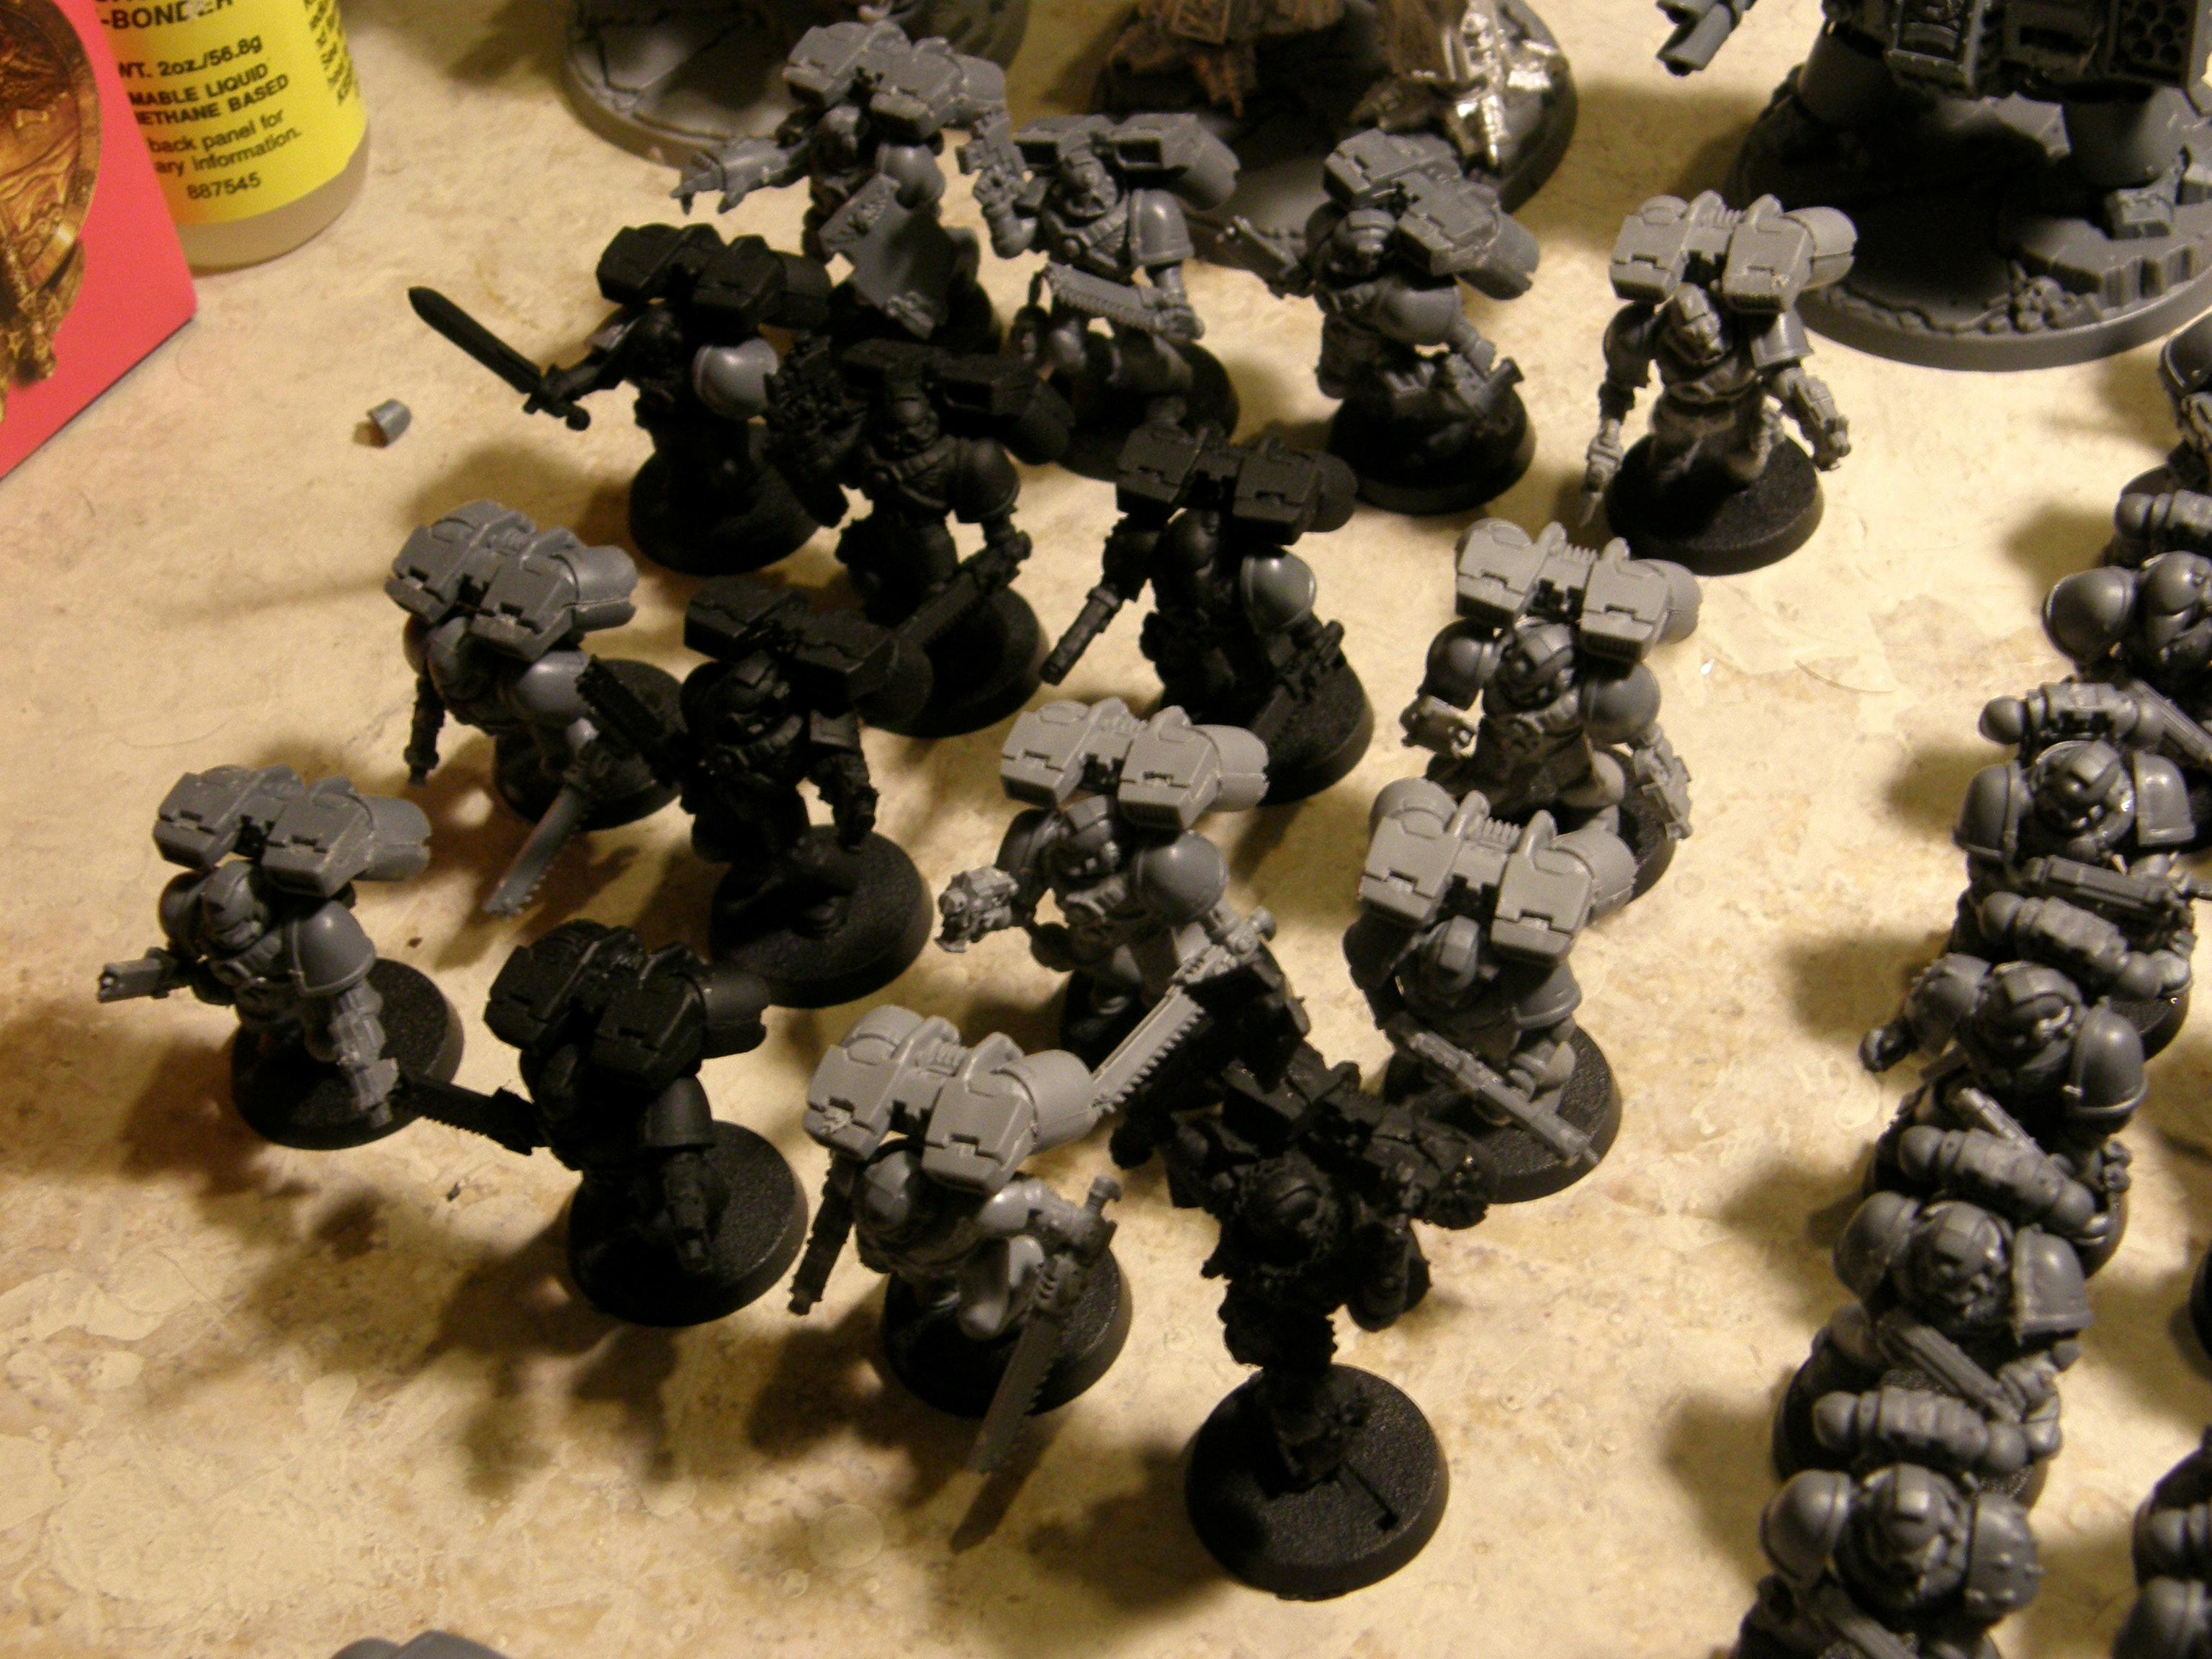 1st Army, Legion Of The Damned